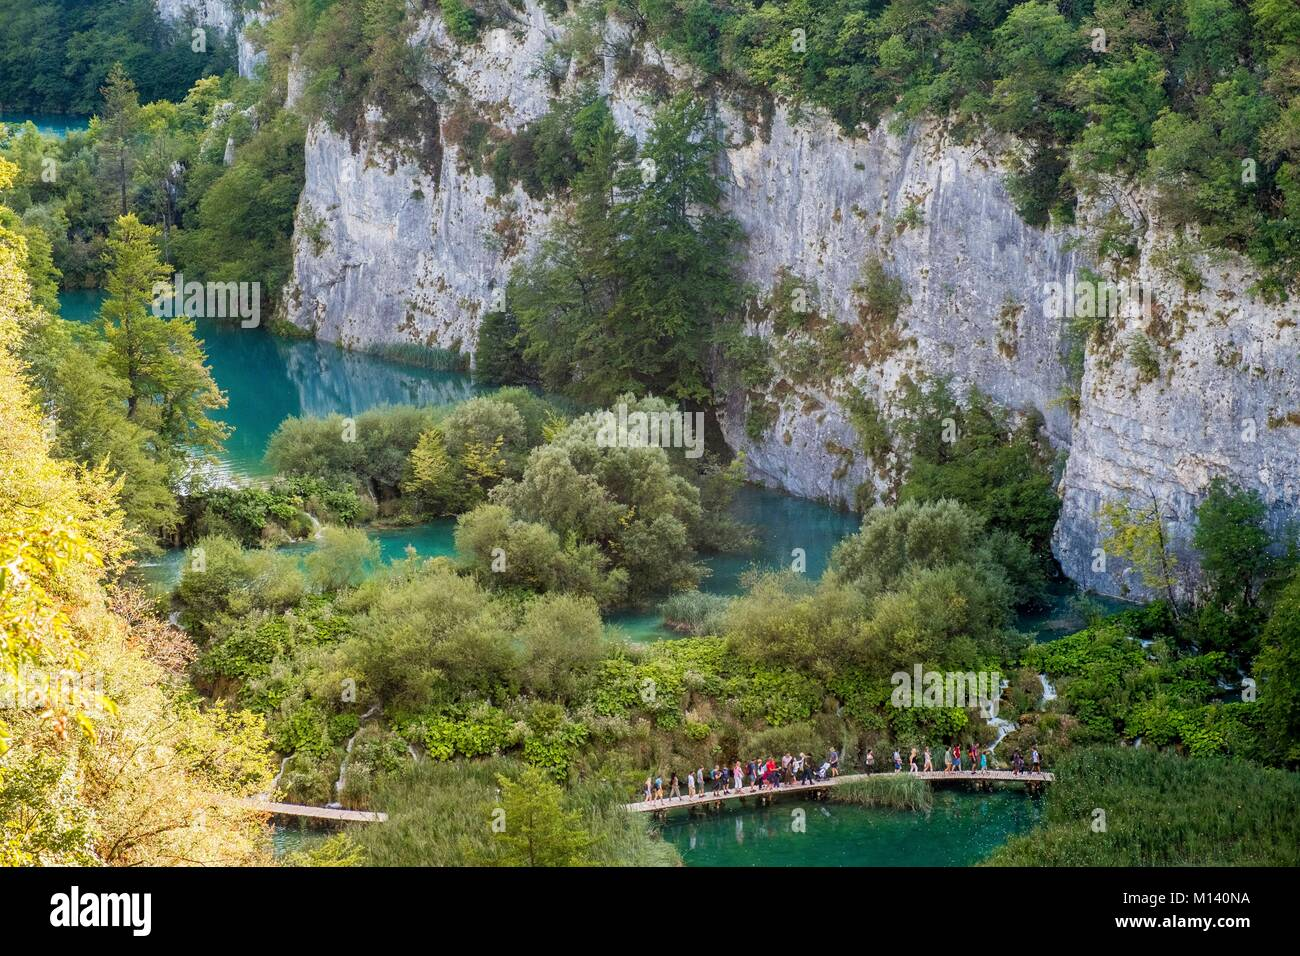 Croatia, North Dalmatia, Plitvice Lakes National Park listed as World Heritage by UNESCO, Lower lakes - Stock Image